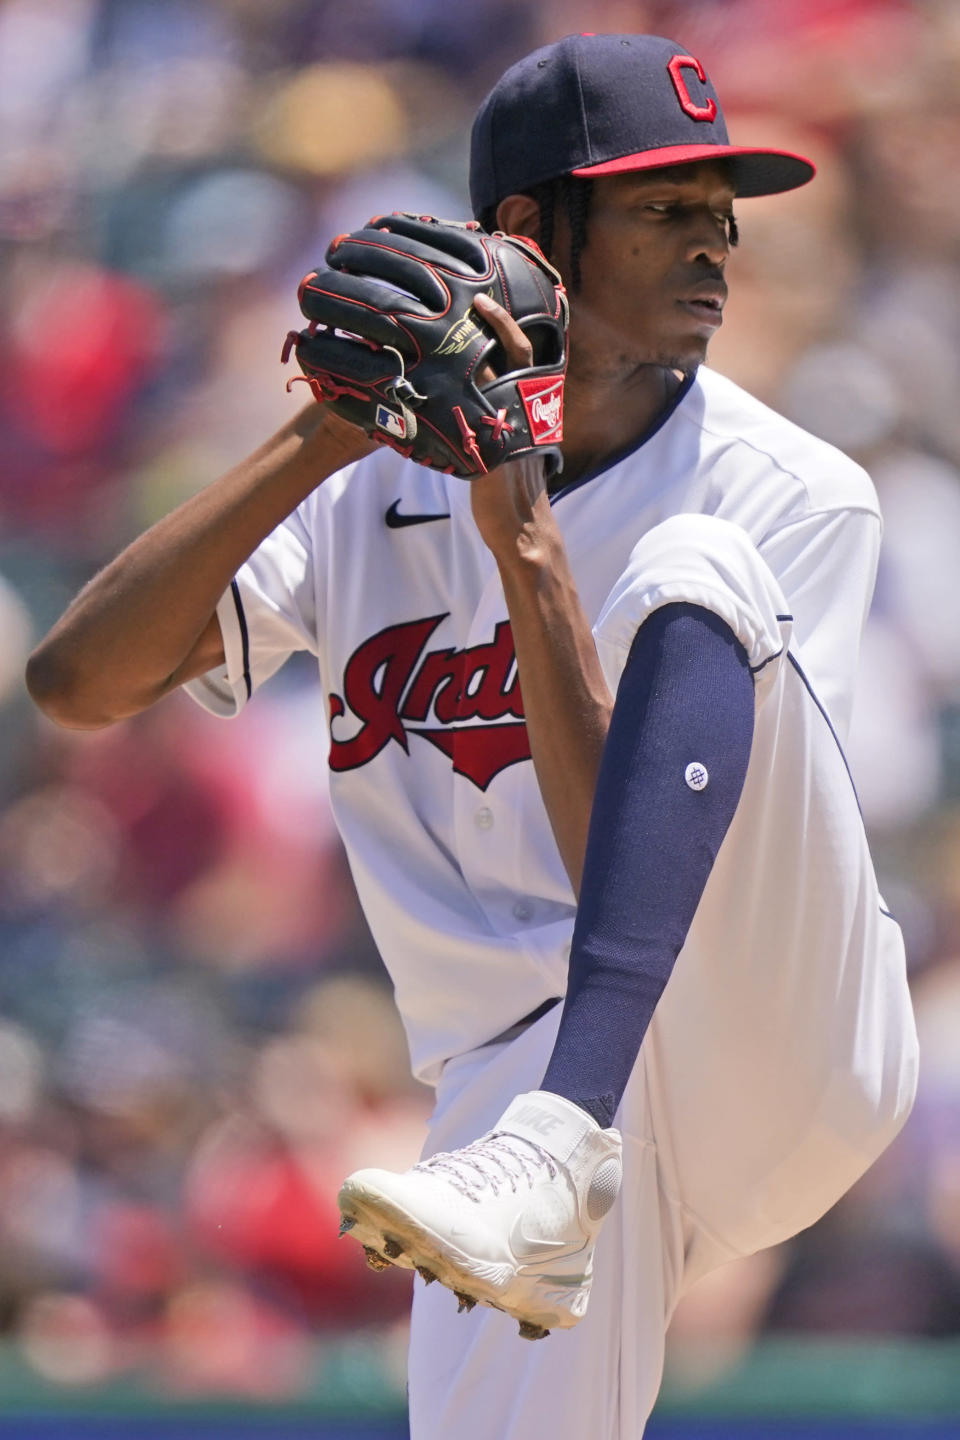 Cleveland Indians starting pitcher Triston McKenzie delivers in the first inning of a baseball game against the Tampa Bay Rays, Sunday, July 25, 2021, in Cleveland. (AP Photo/Tony Dejak)